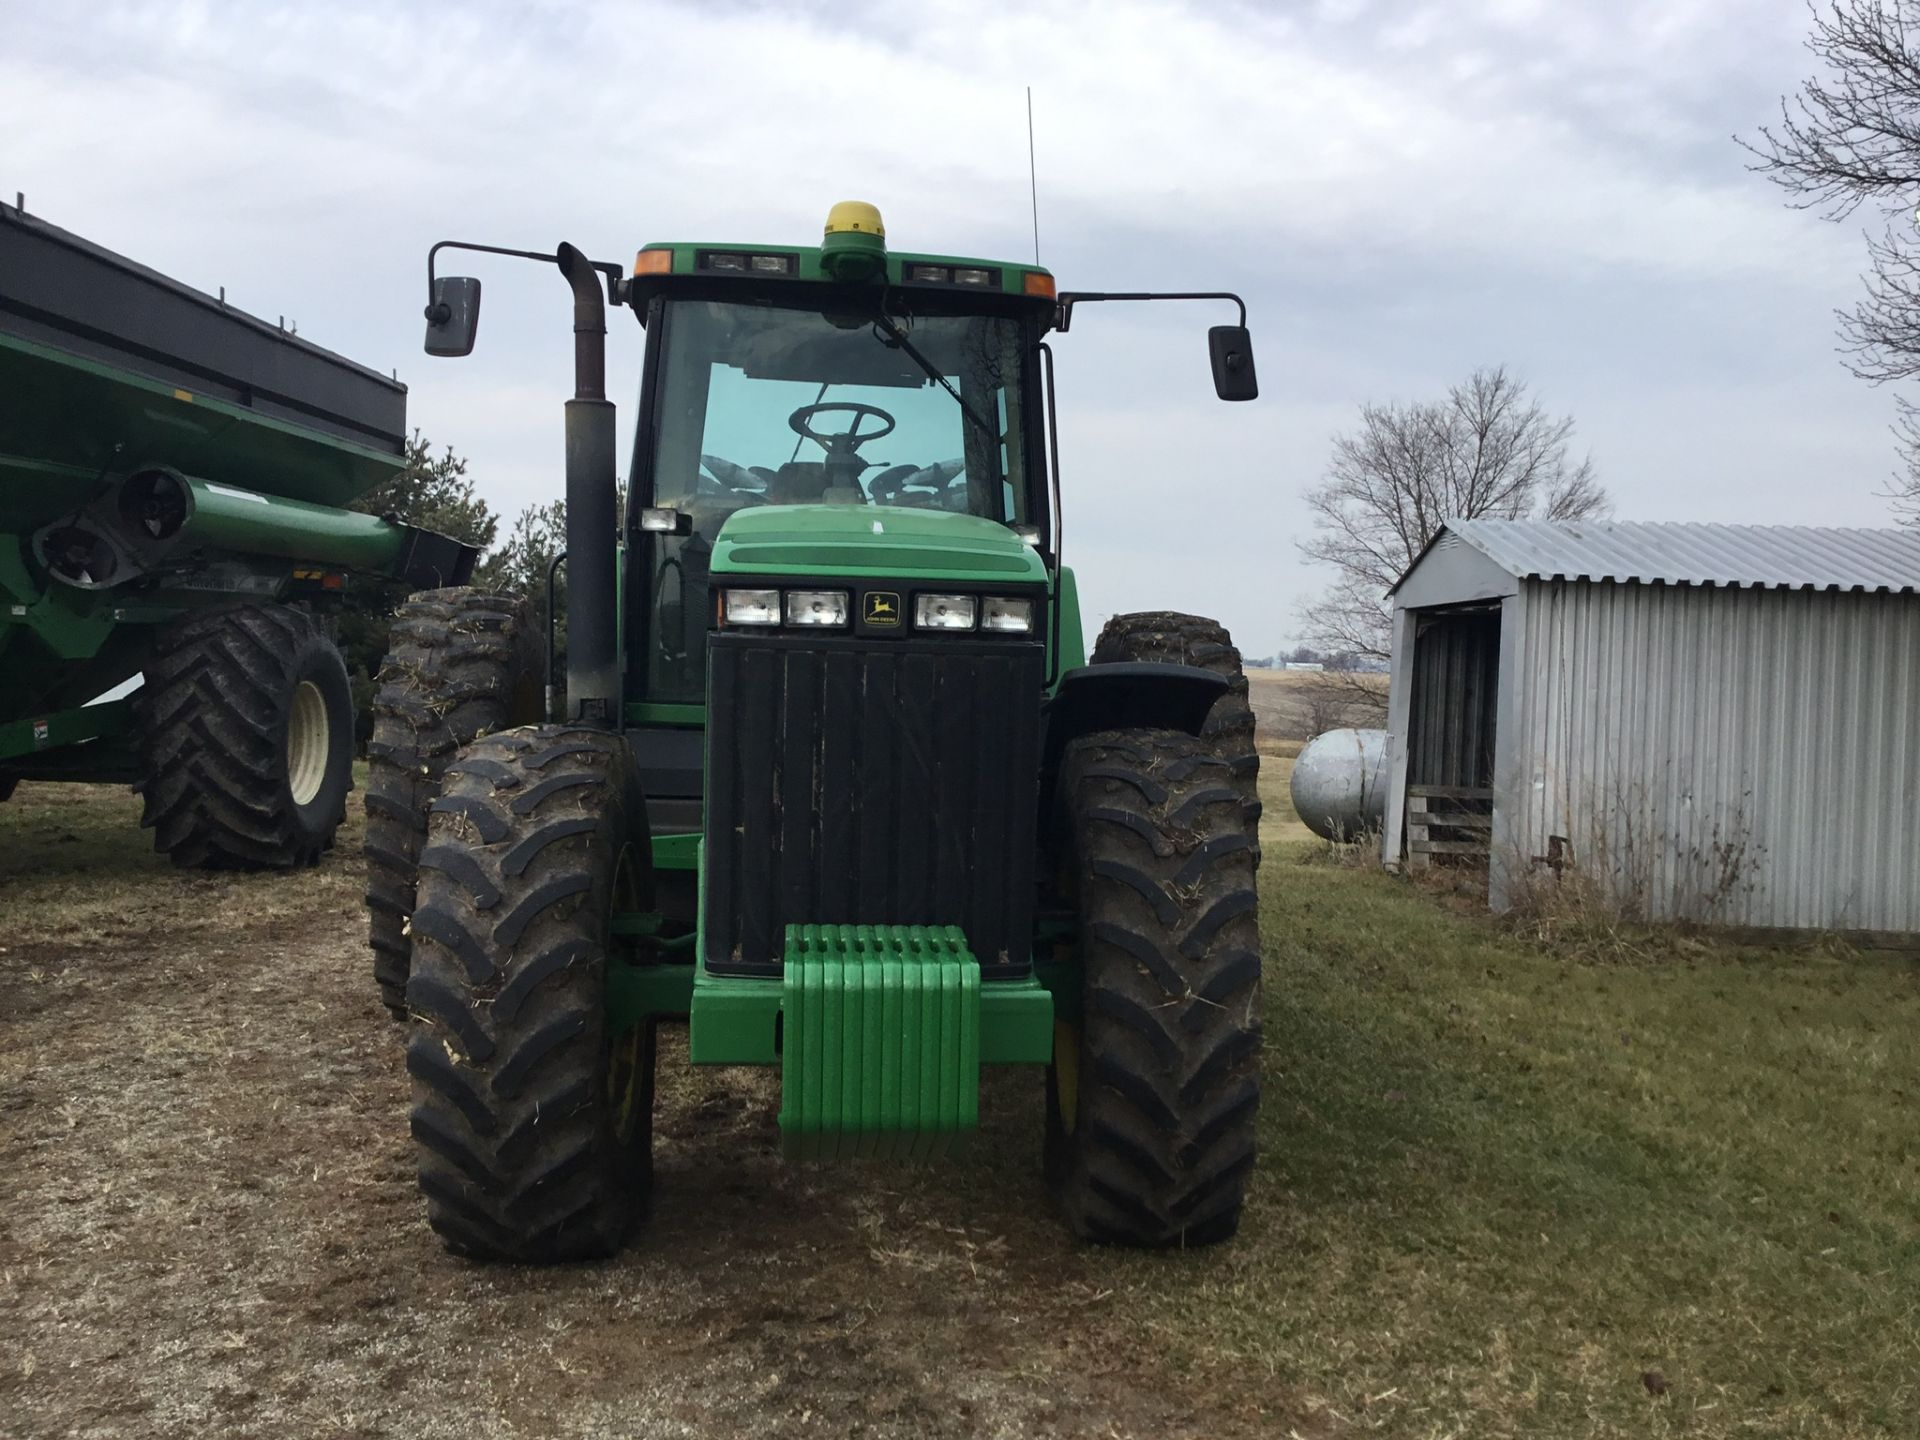 1997 John Deere 8300 MFWD, Power Shift, 3 Hydraulic Remotes, 3 Pt., Quick Hitch, PTO, Green Star - Image 3 of 25